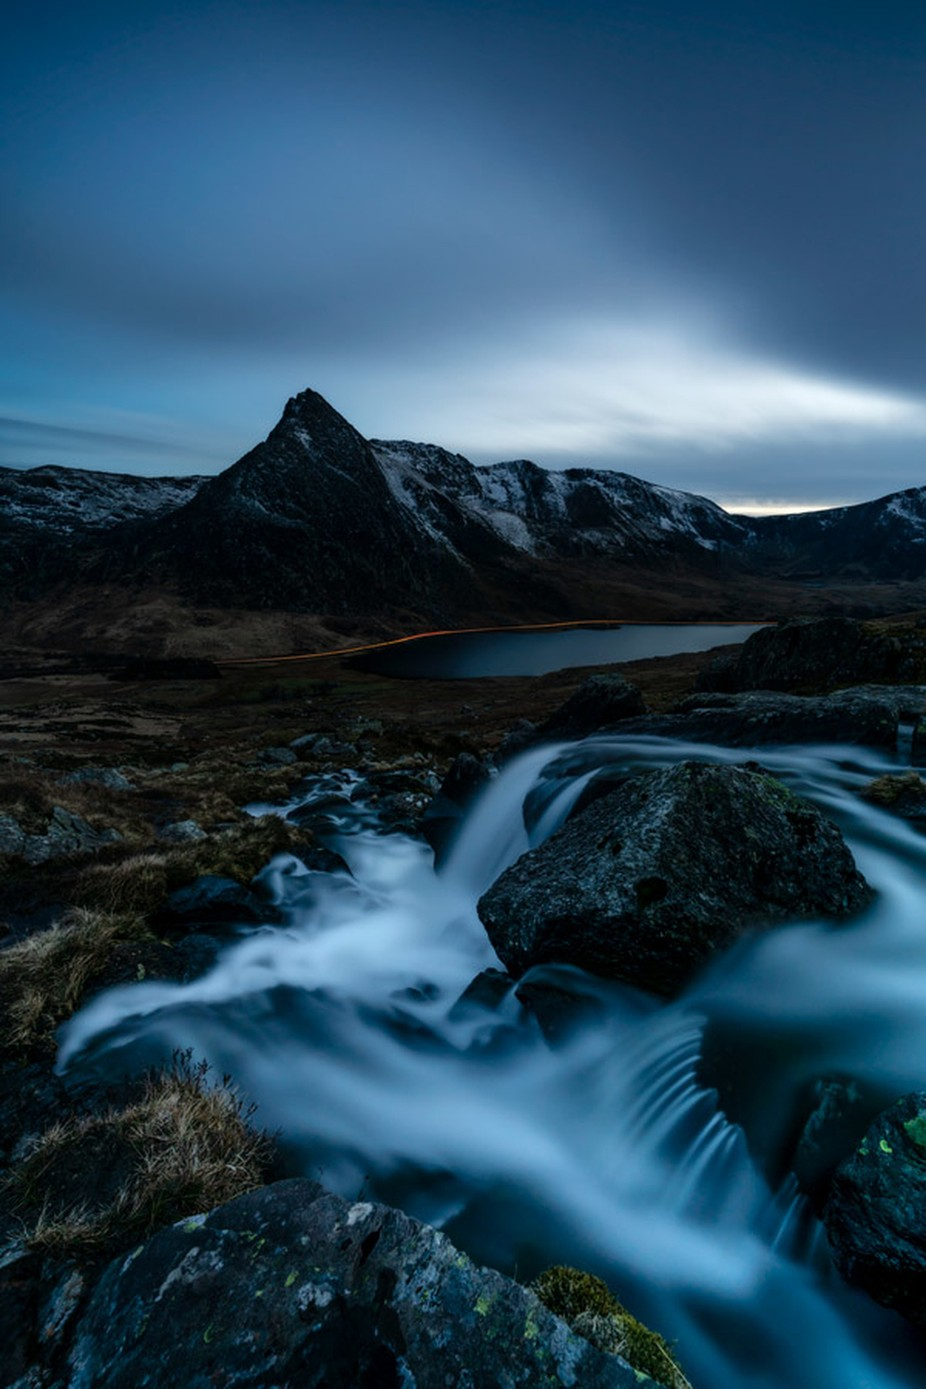 Tryfan under the cover of darkness by jamesaphoto - The Night And The Mountains Photo Contest